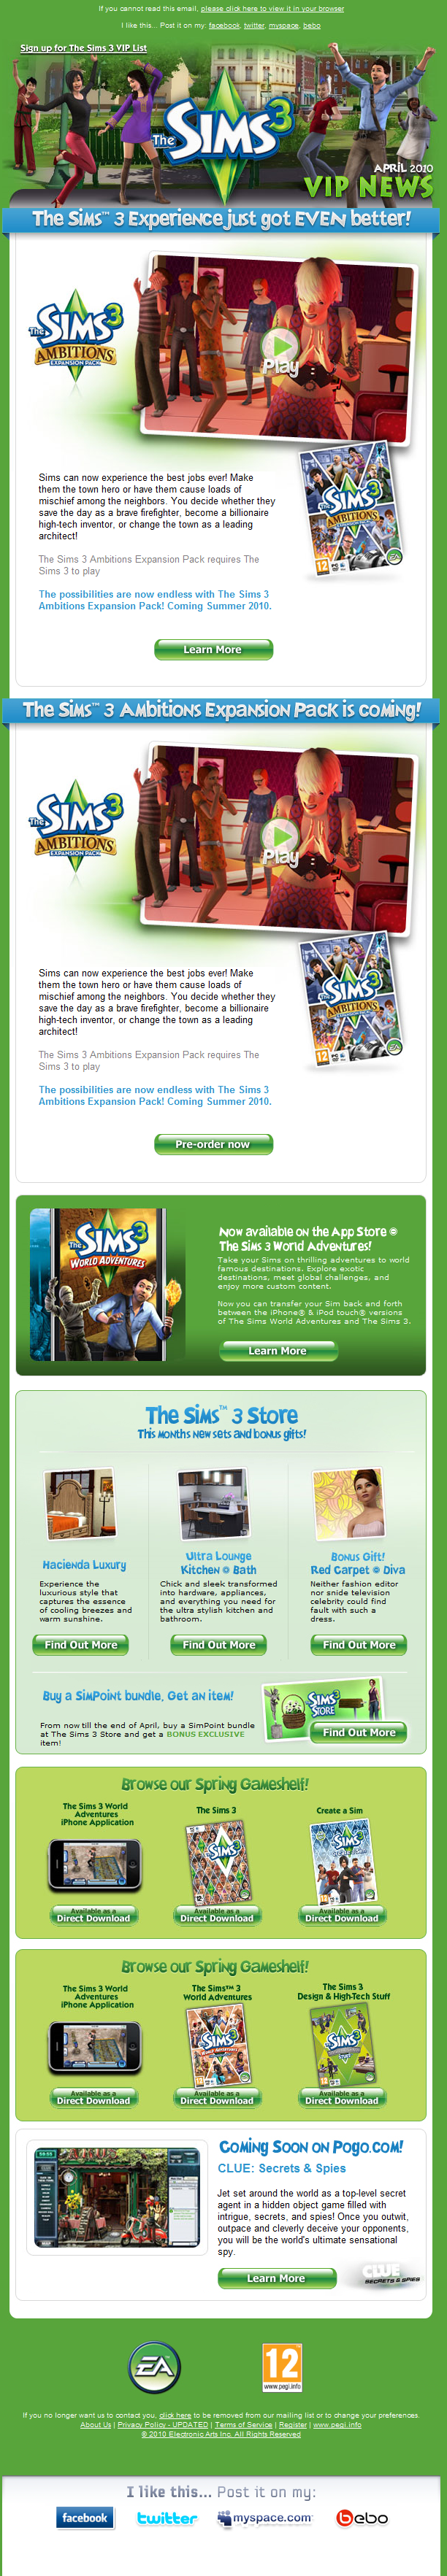 The Sims 3 VIP Newsletter - April 2010